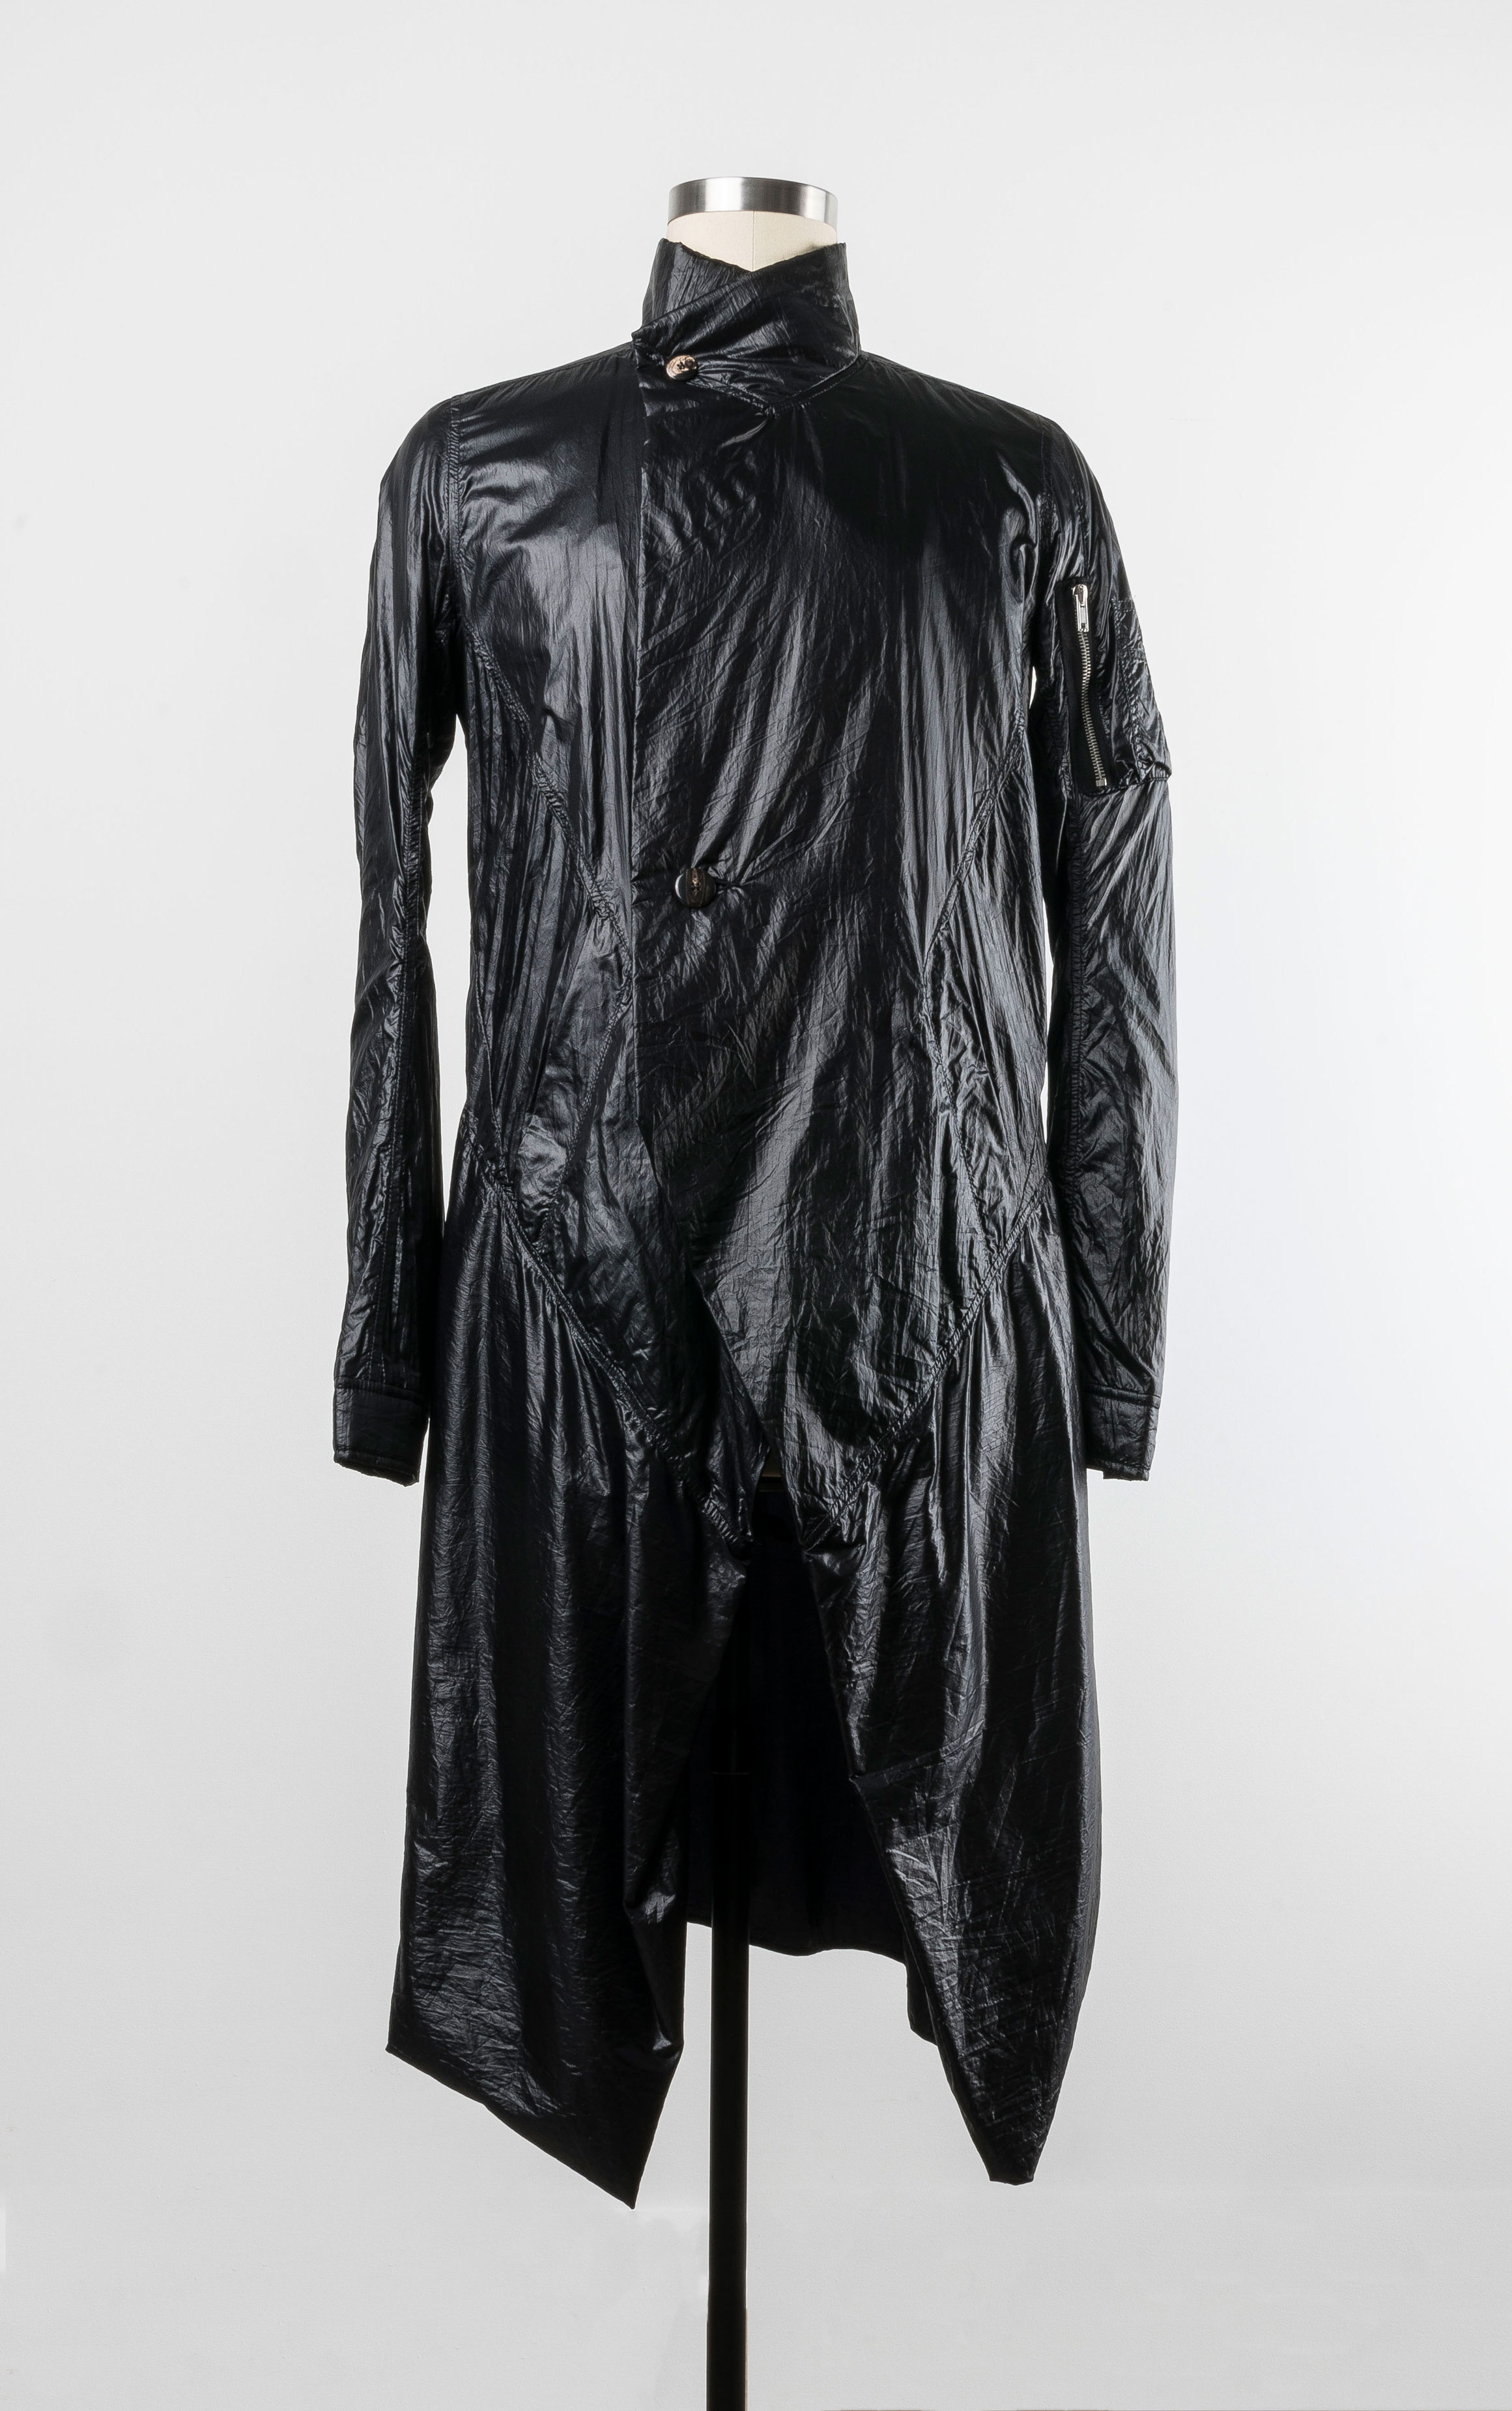 Mutant lab coat, Rick Owens, Spring/Summer 2010, from the wardrobe of Alexandre Marr and Dominic Iudiciani, photograph by Dominic Iudiciani